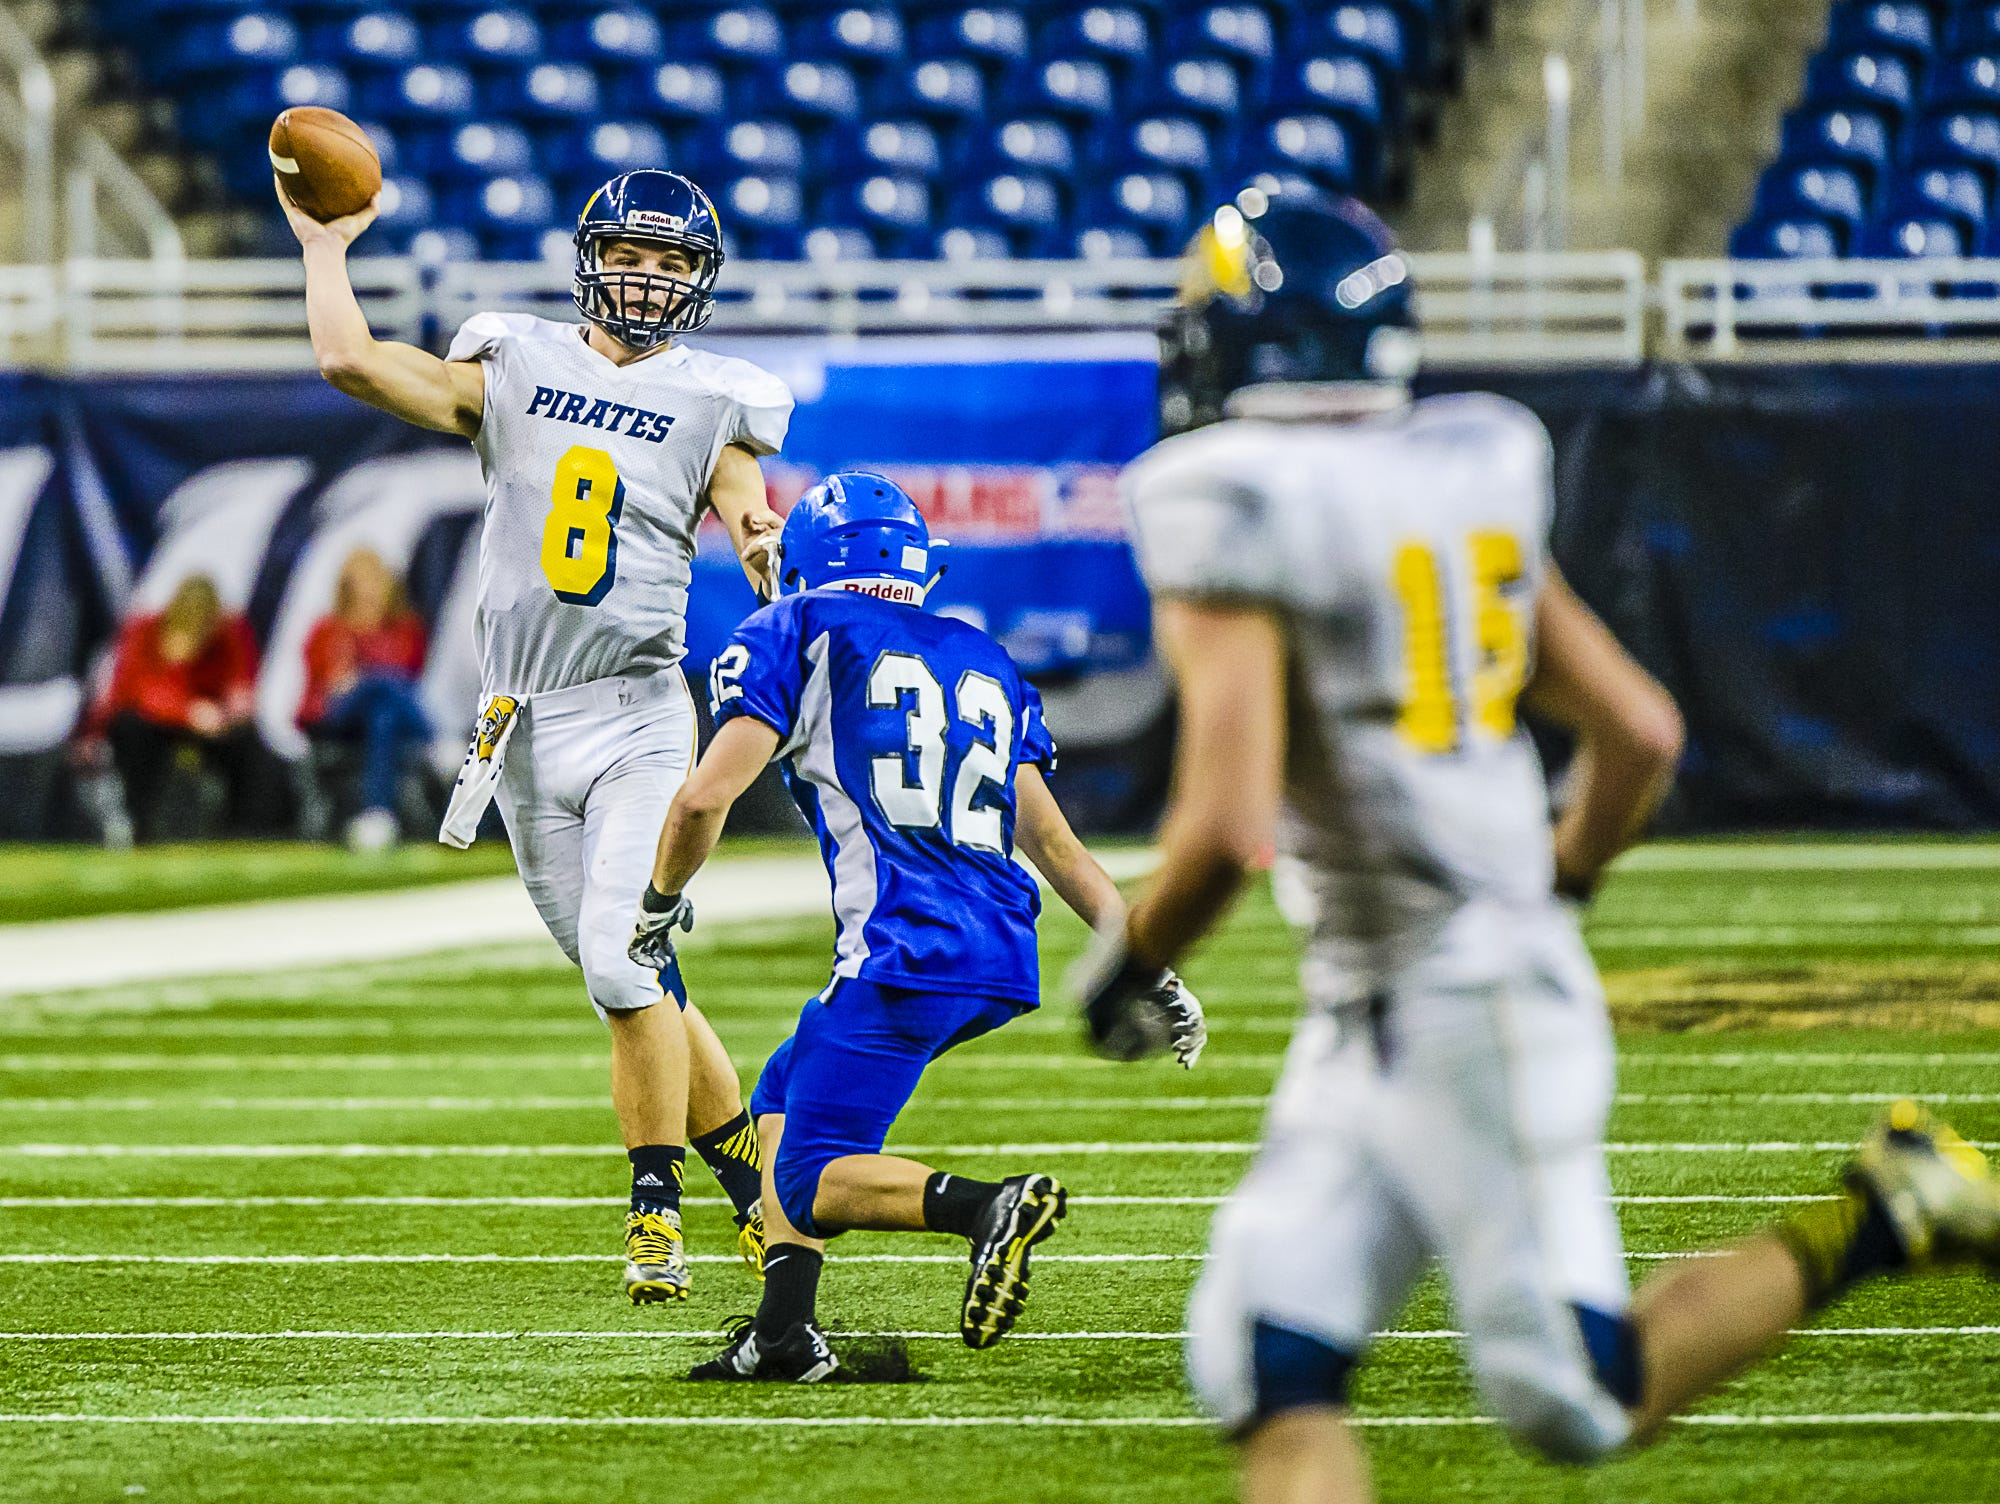 Pewamo-Westphalia quarterback Jimmy Lehman delivers a pass during last year's state championship game. Lehman is one of several playmakers the Pirates have aside from record-setting rusher Jared Smith.